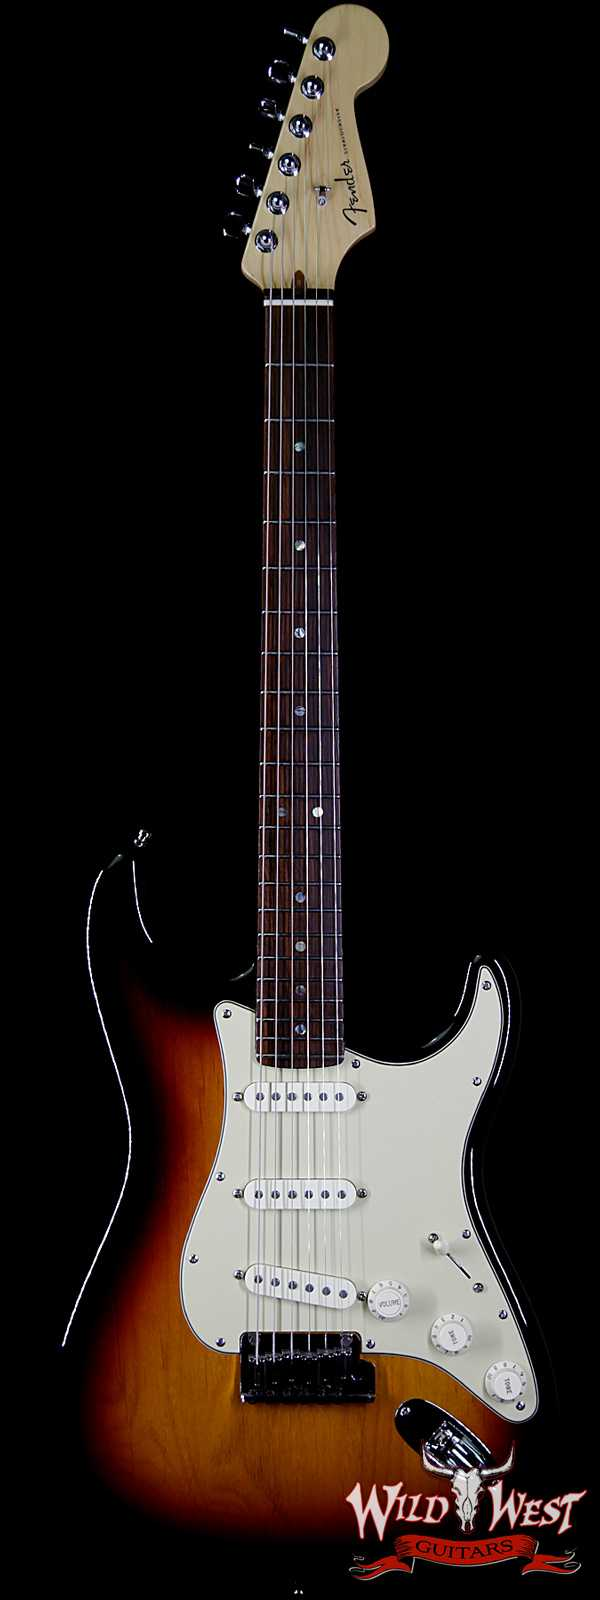 2005 Fender American Stratocaster Deluxe Rosewood Fingerboard with S-1 Switch 3 Tone Sunburst